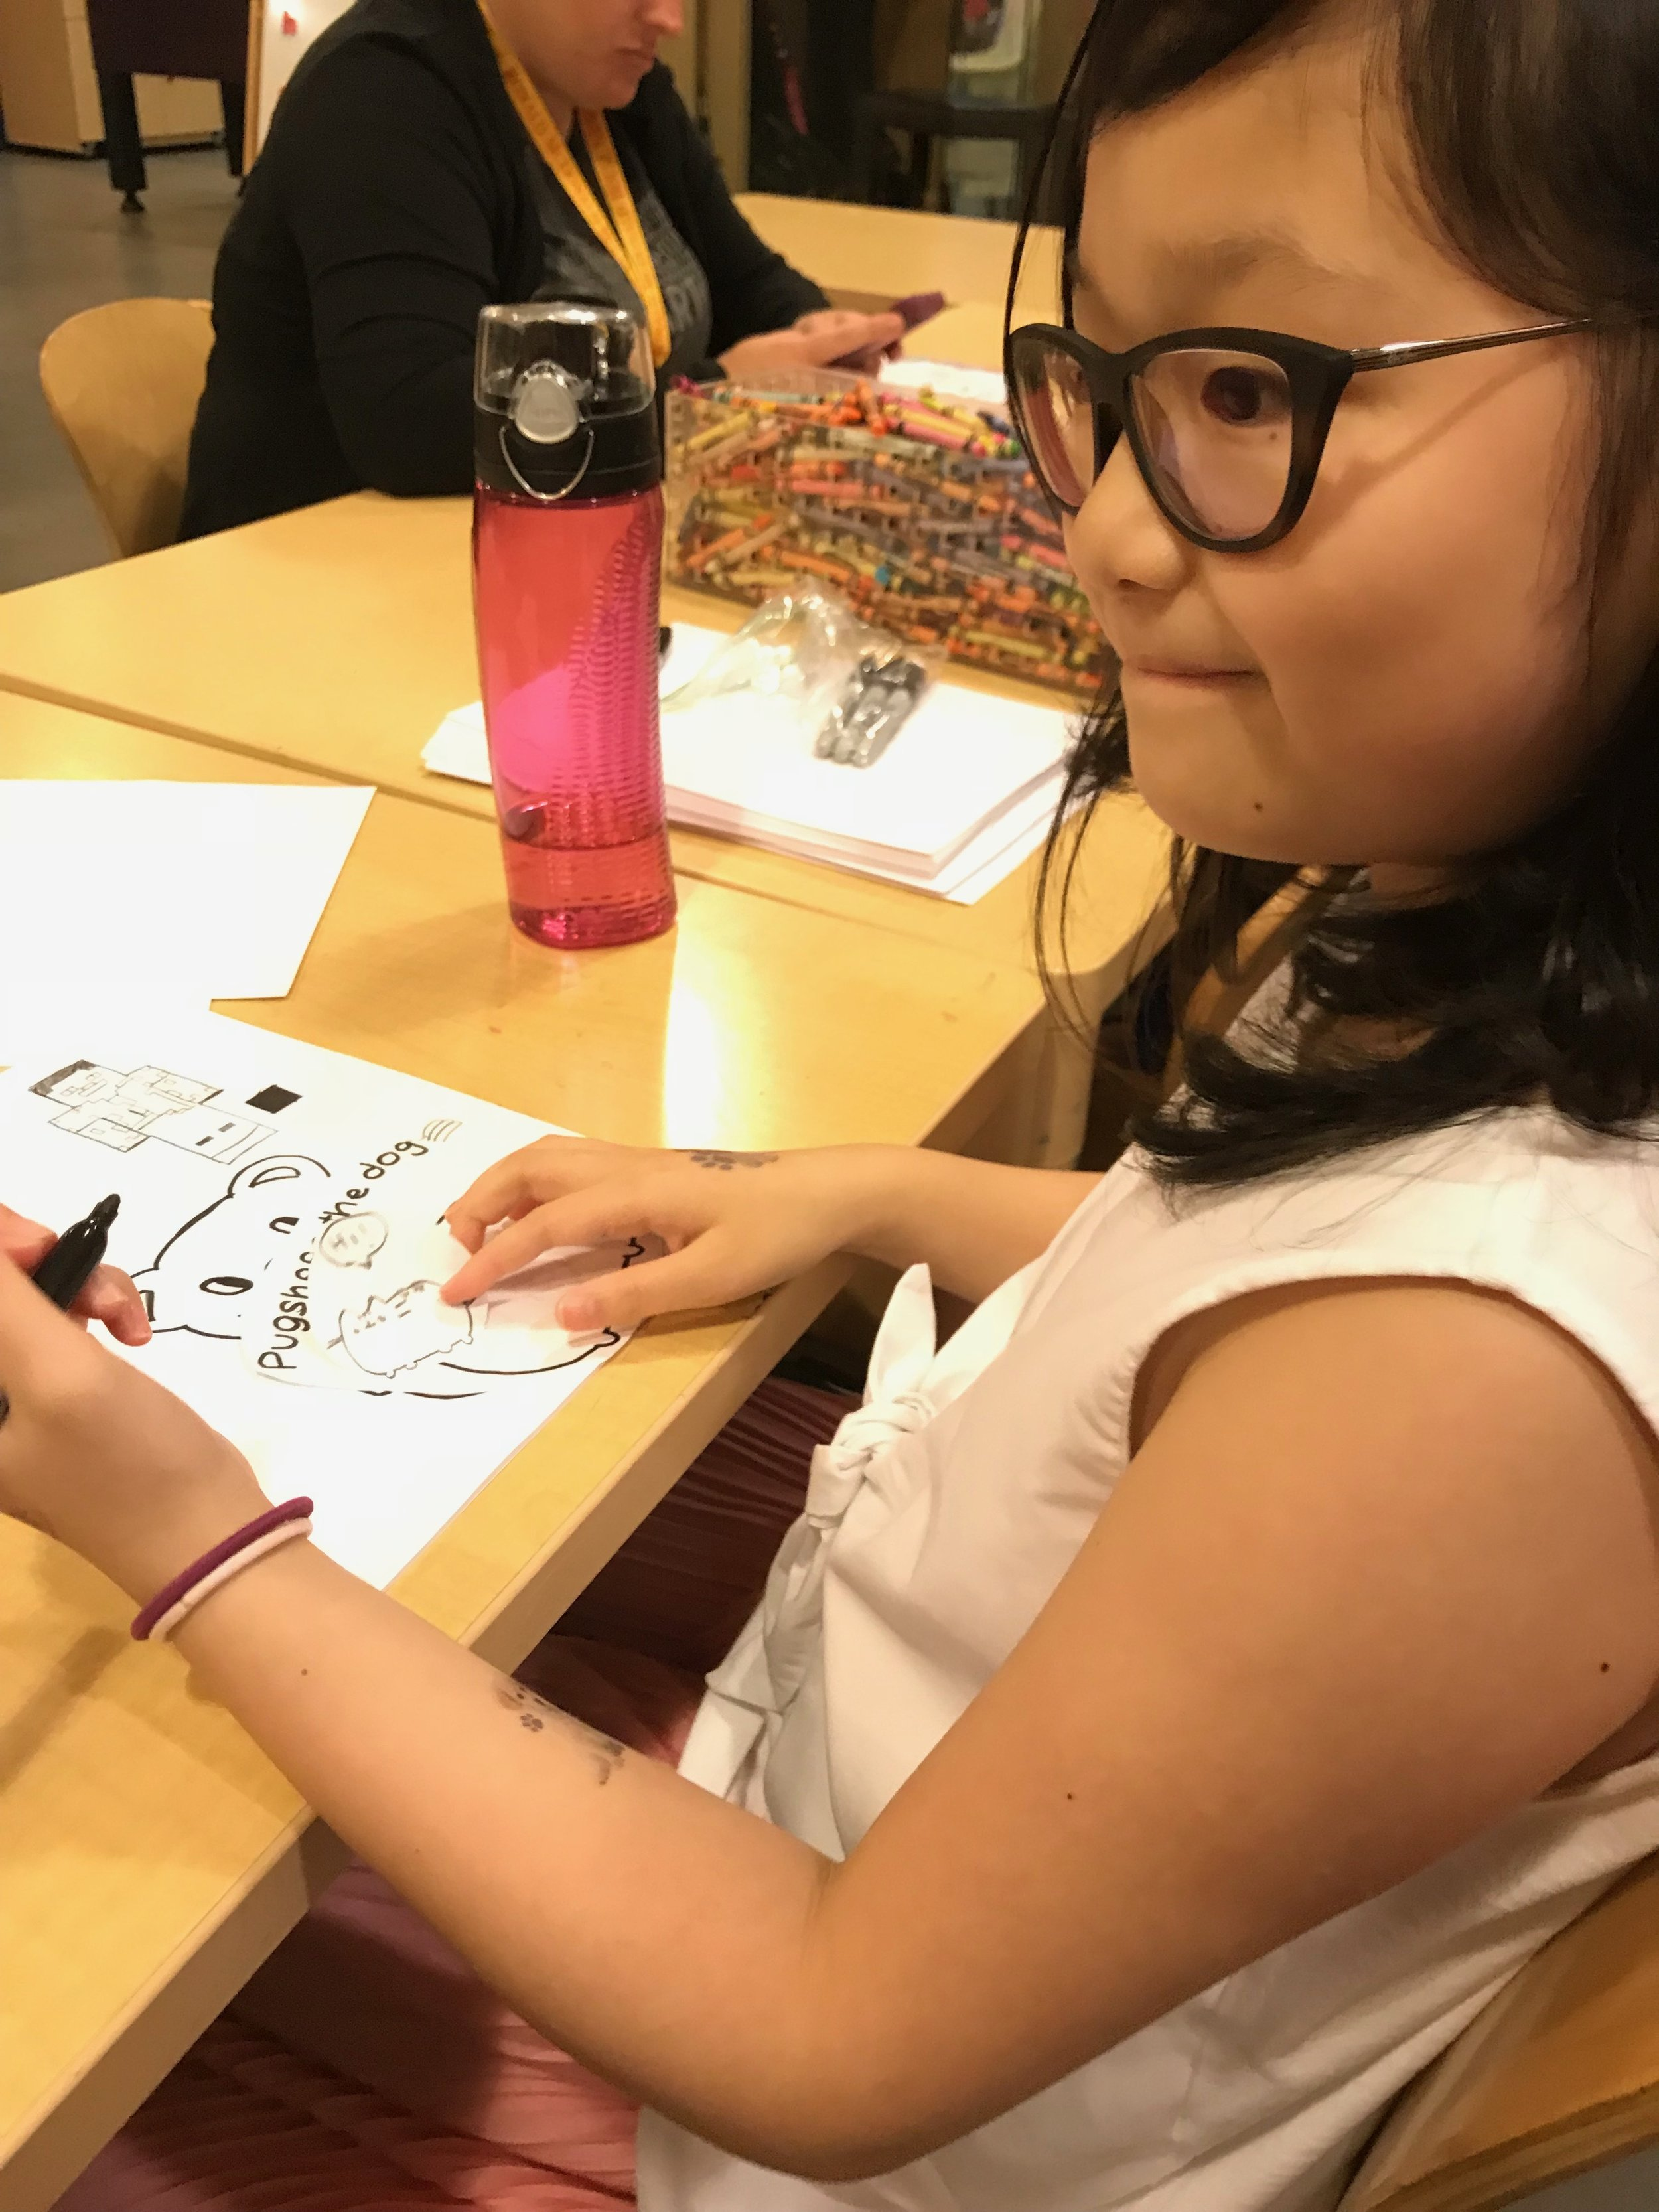 Belle is a 9-year old girl from China. She was in New York just in time to participate in our initiative